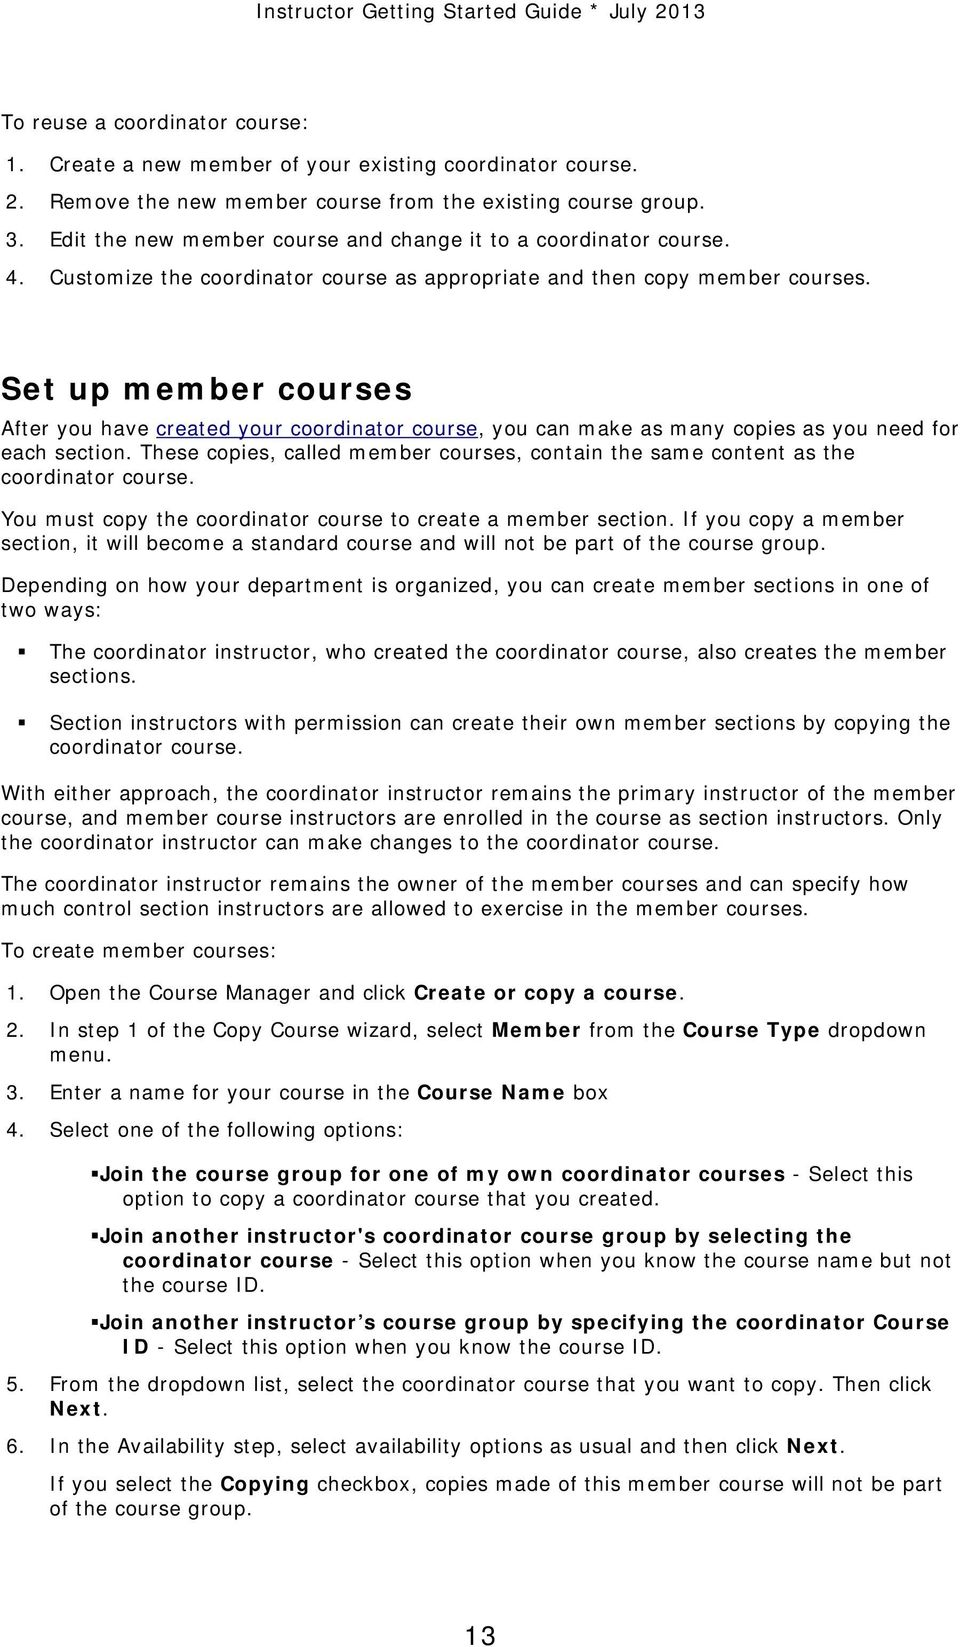 Set up member courses After you have created your coordinator course, you can make as many copies as you need for each section.